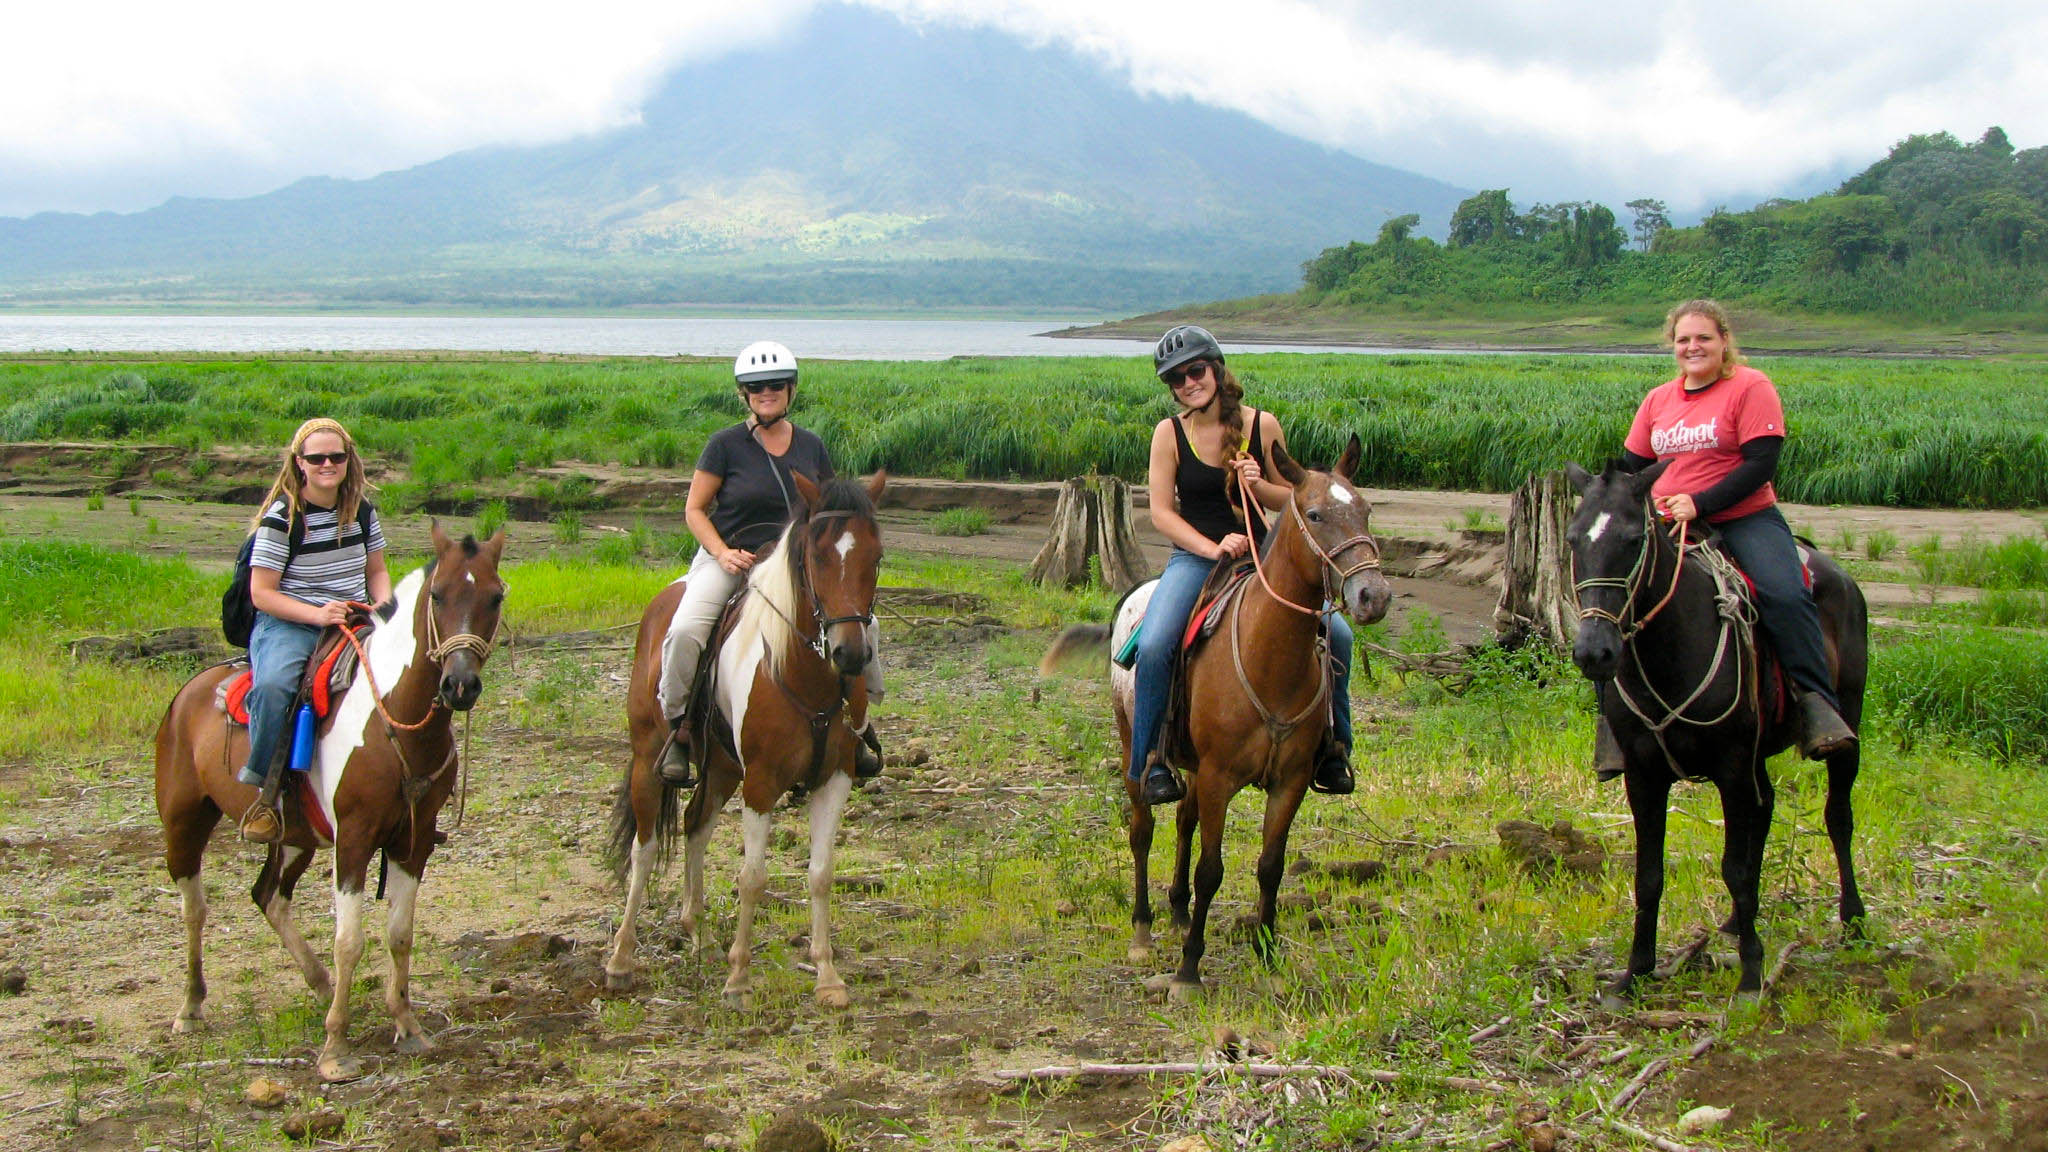 Horseback around the Lake and Volcano